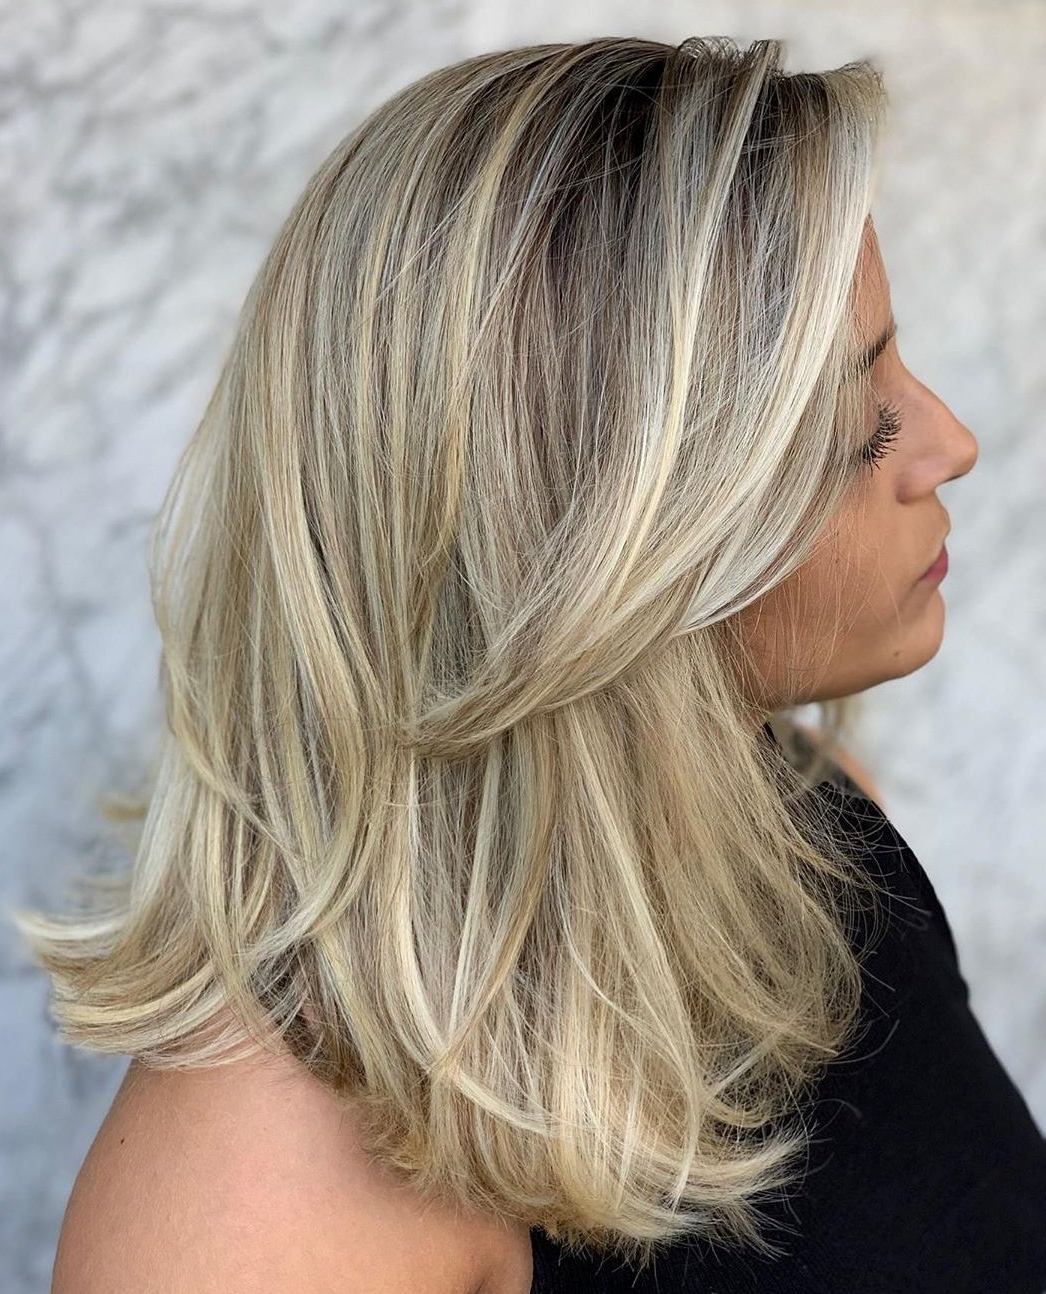 40 Medium Length Hairstyles For Thick Hair ⋆ Palau Oceans 30+ Awesome Thick Hair Low Maintenance Medium Length Hairstyles